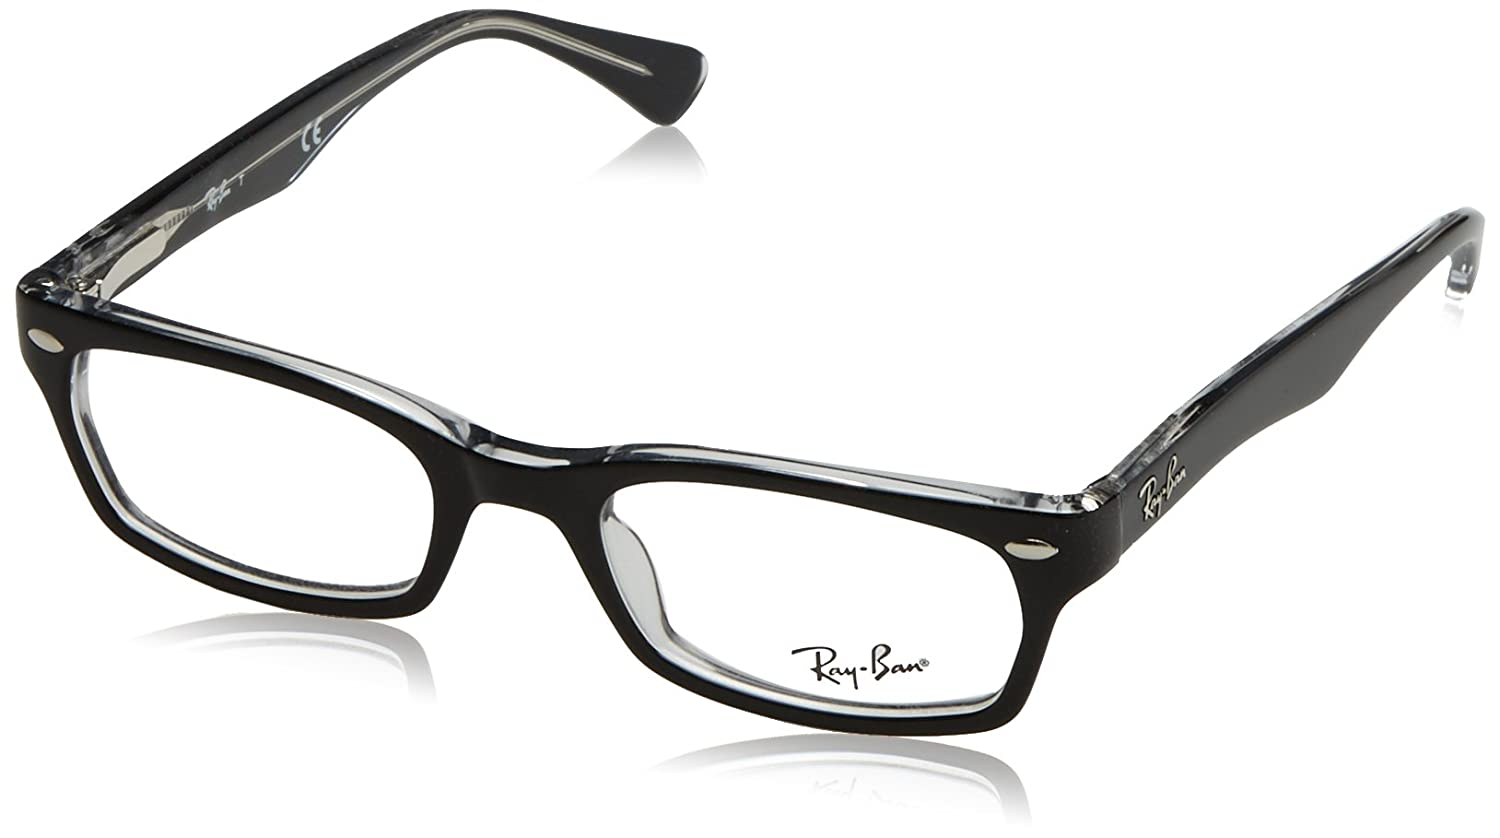 8a07cf1d58 Amazon.com  Ray-Ban Women s RX5150 Eyeglasses Top Black On Transparent  48mm  Health   Personal Care